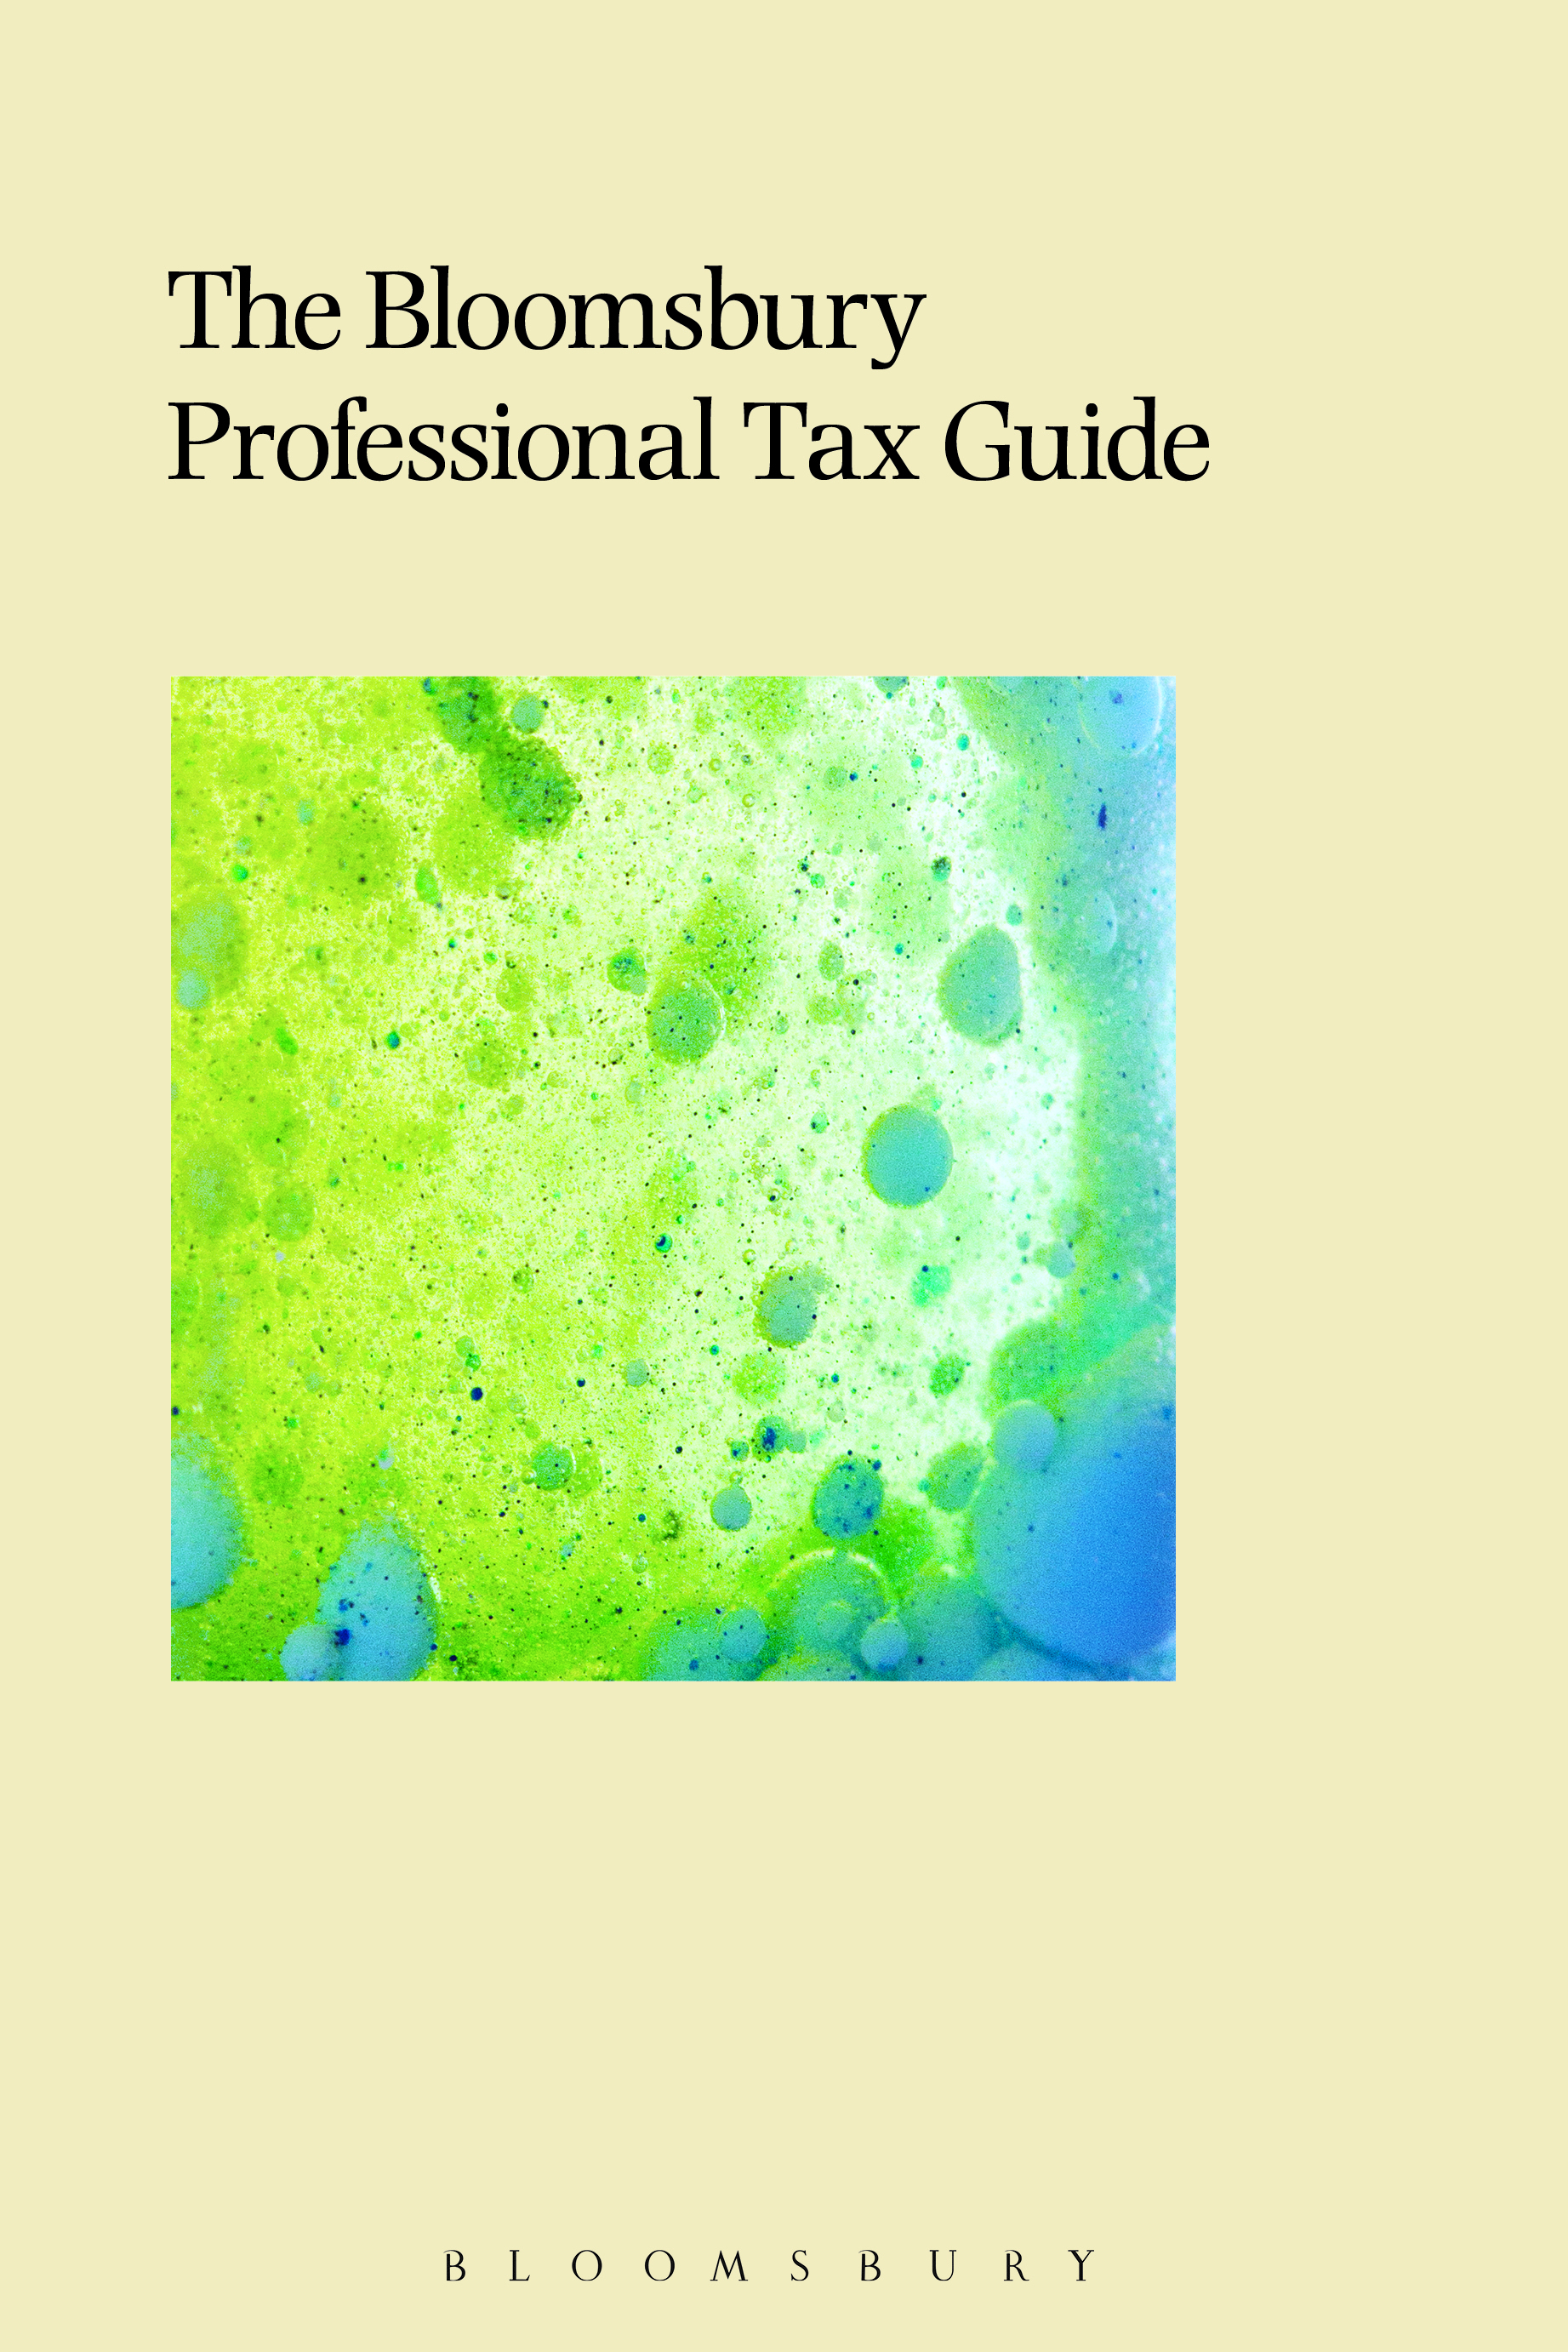 Bloomsbury Professional Tax Guide 2019/20